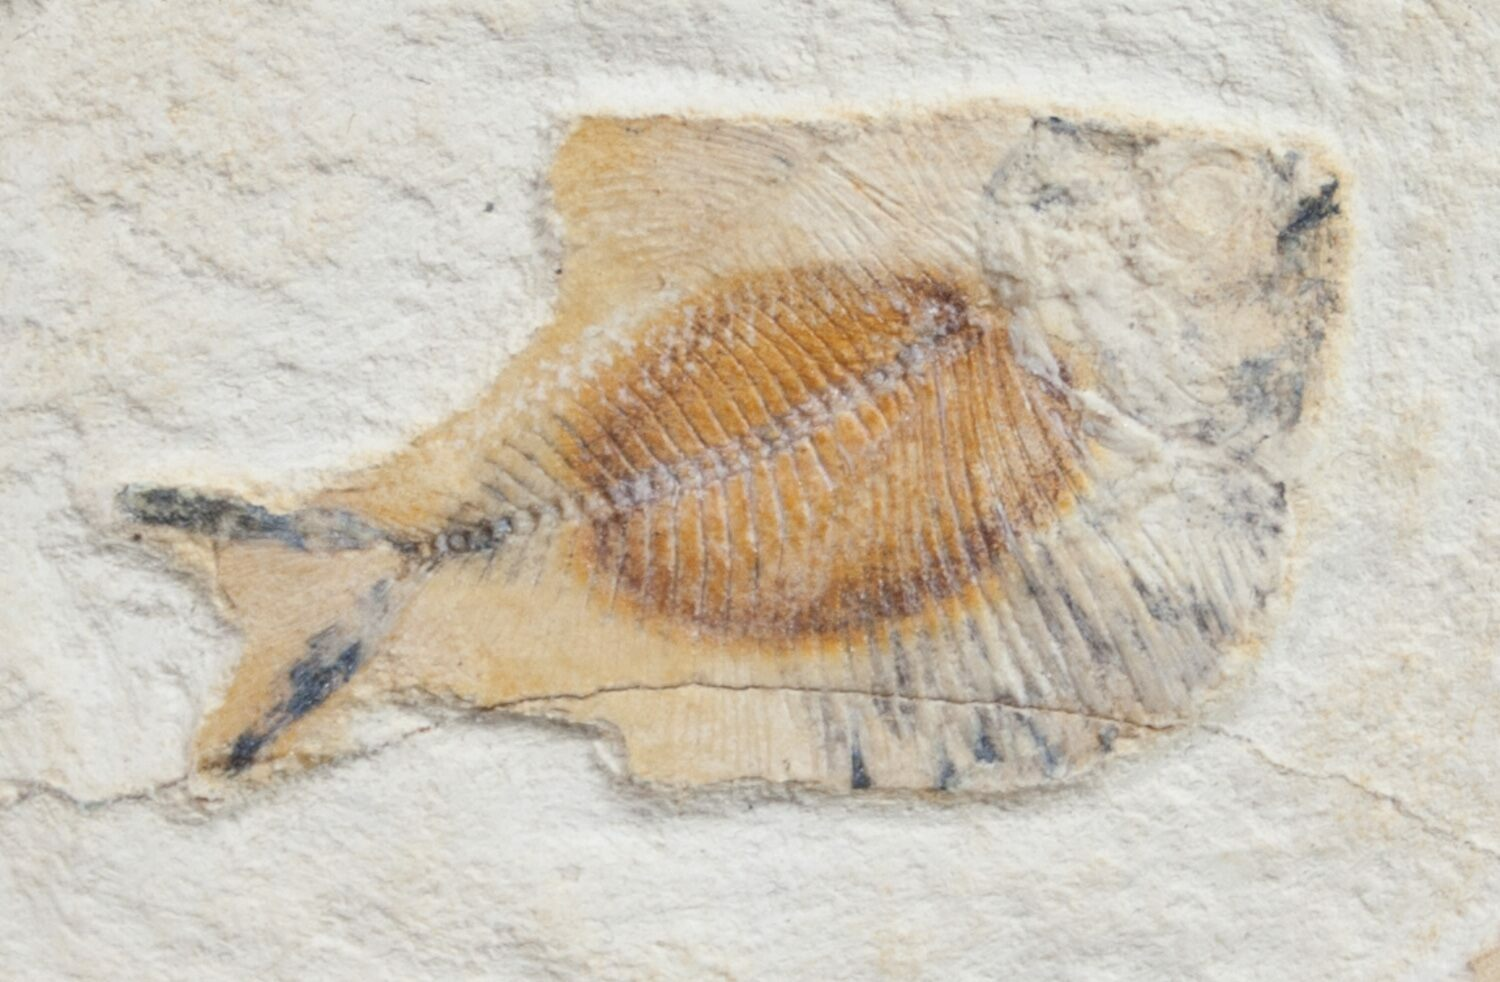 1 7 pycnodontiform fish fossil morocco for sale 9833 for Fish fossils for sale